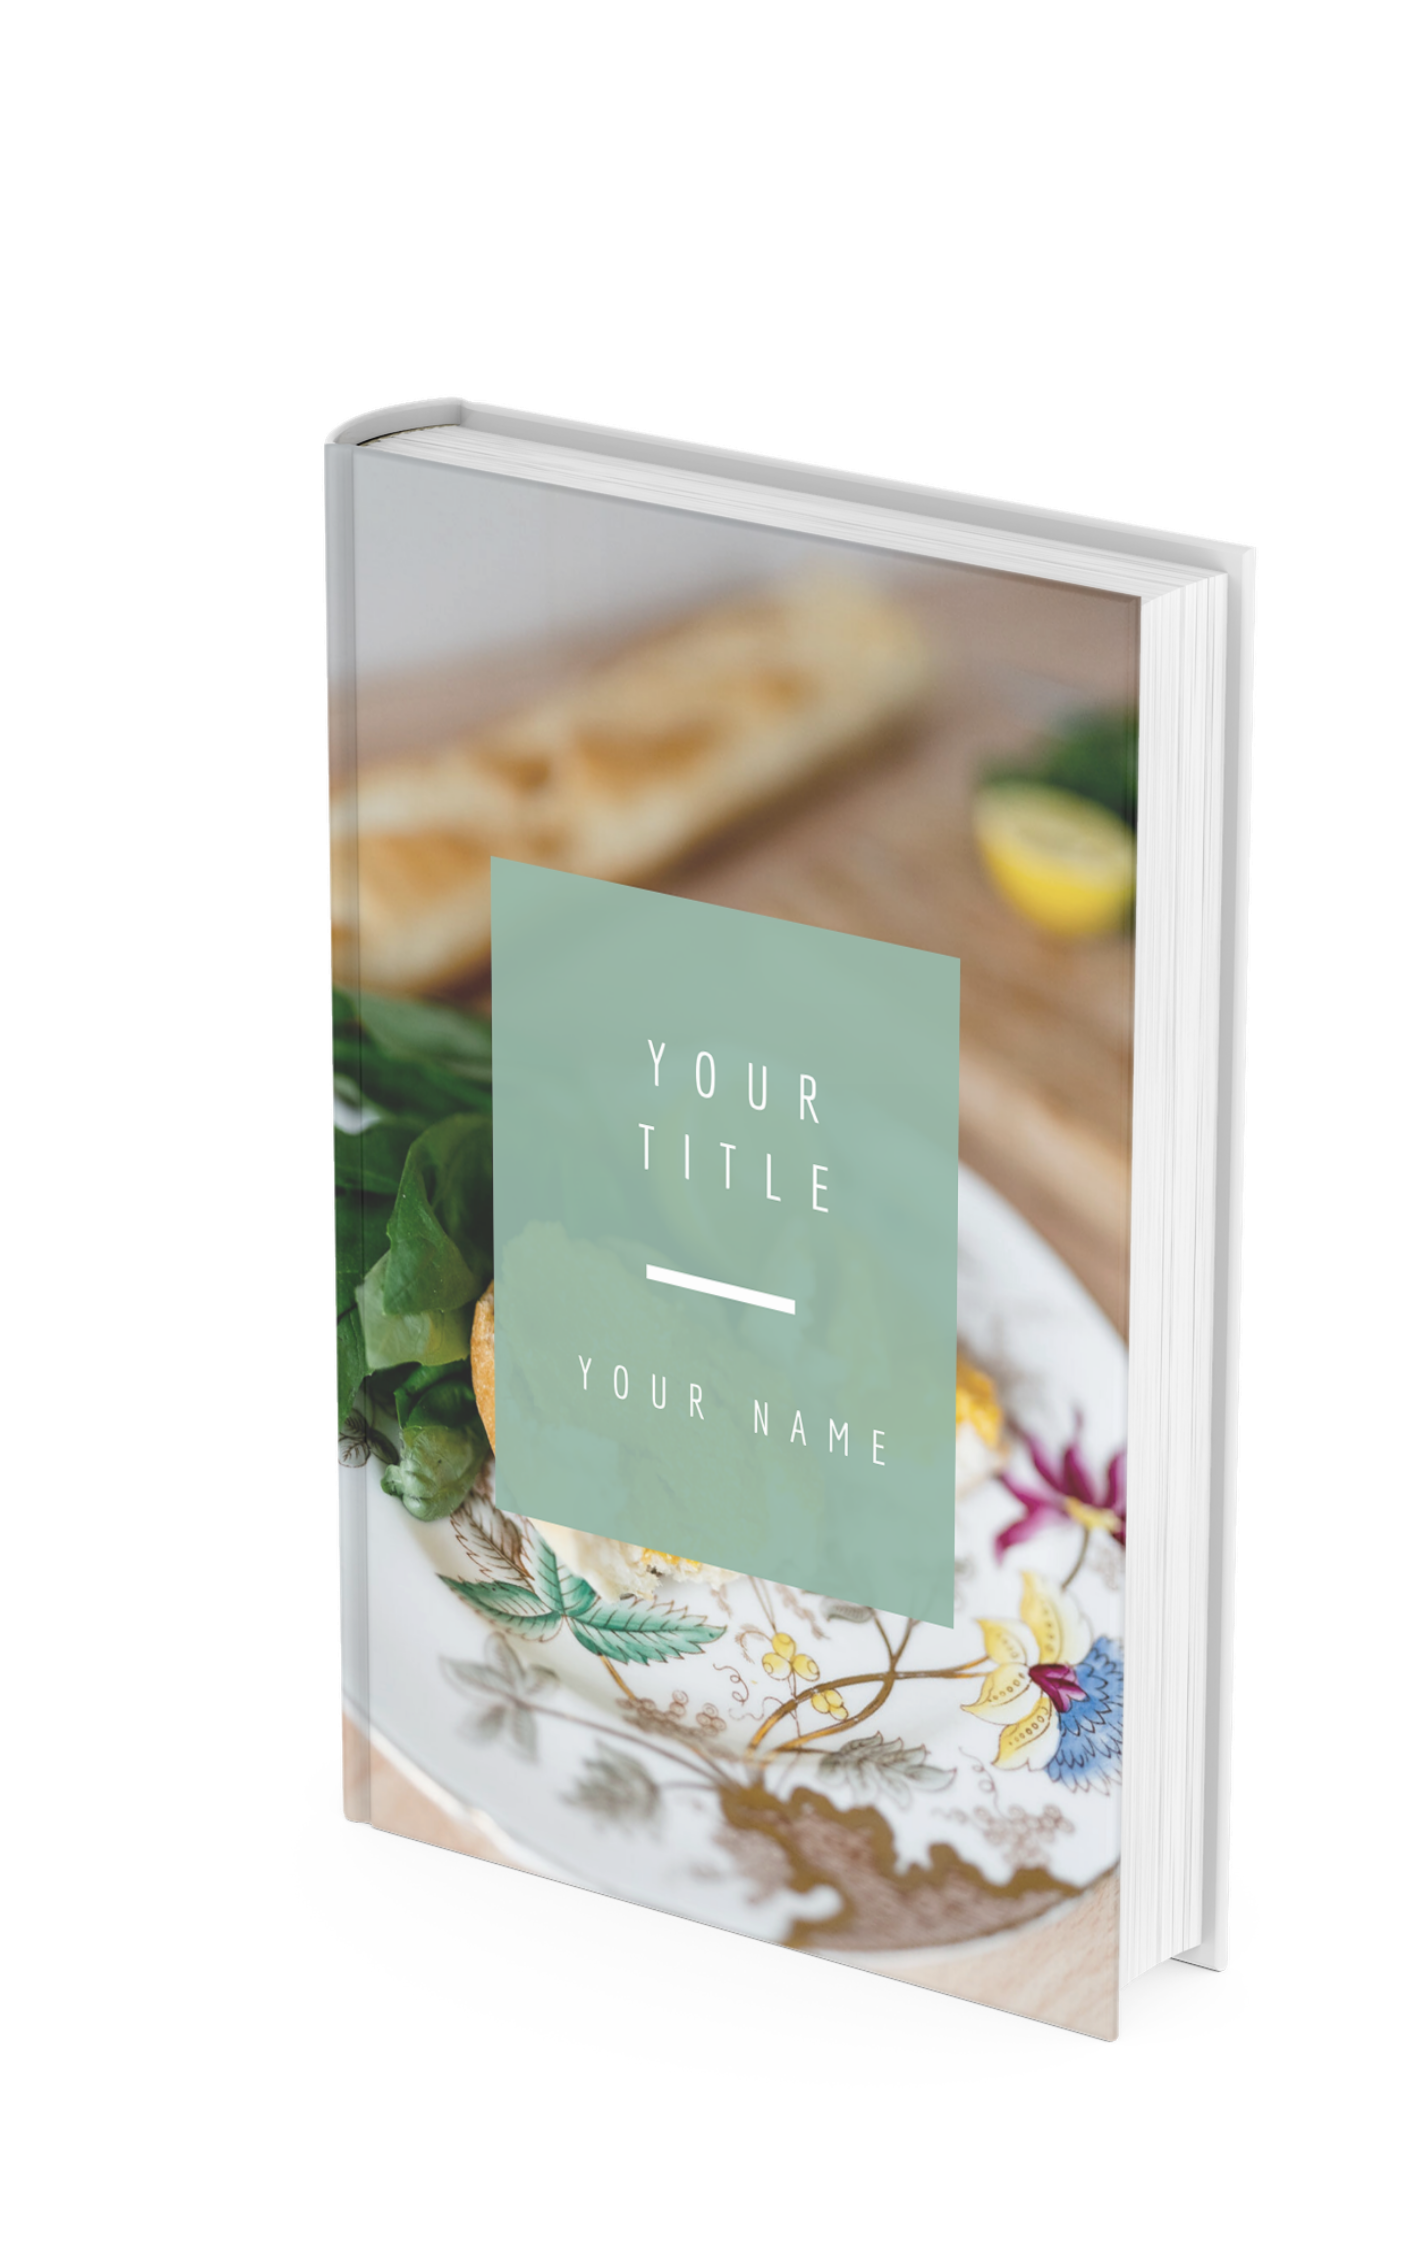 Mock up of a book - the cover reads: Your title; Your name